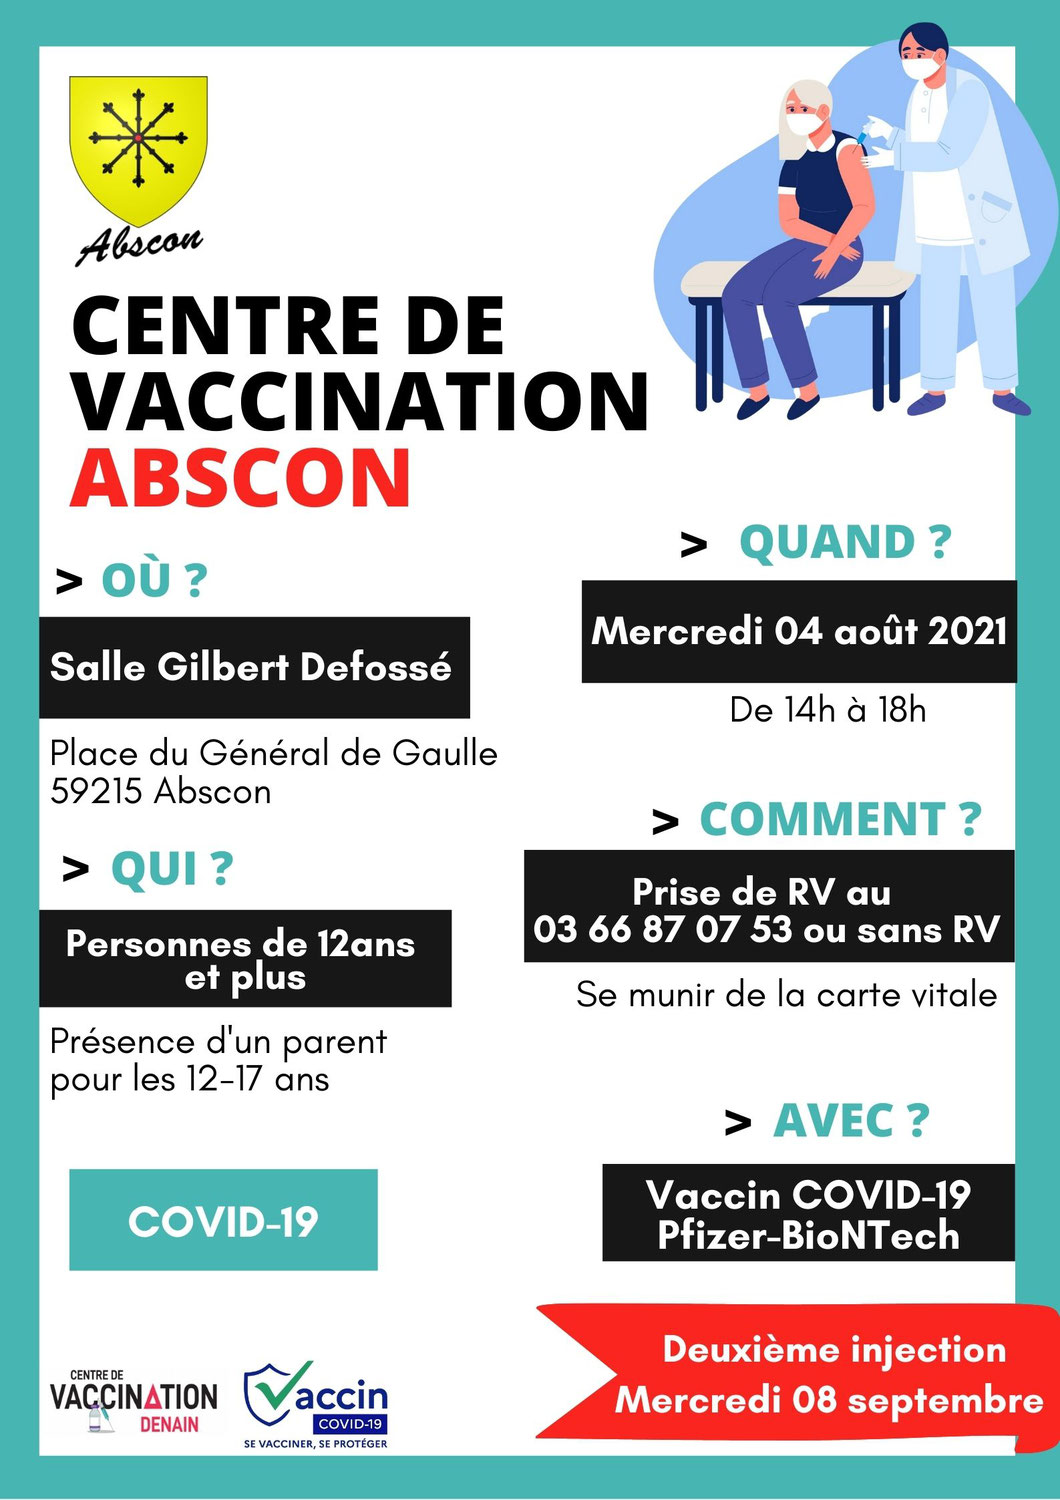 Vaccination à Abscon